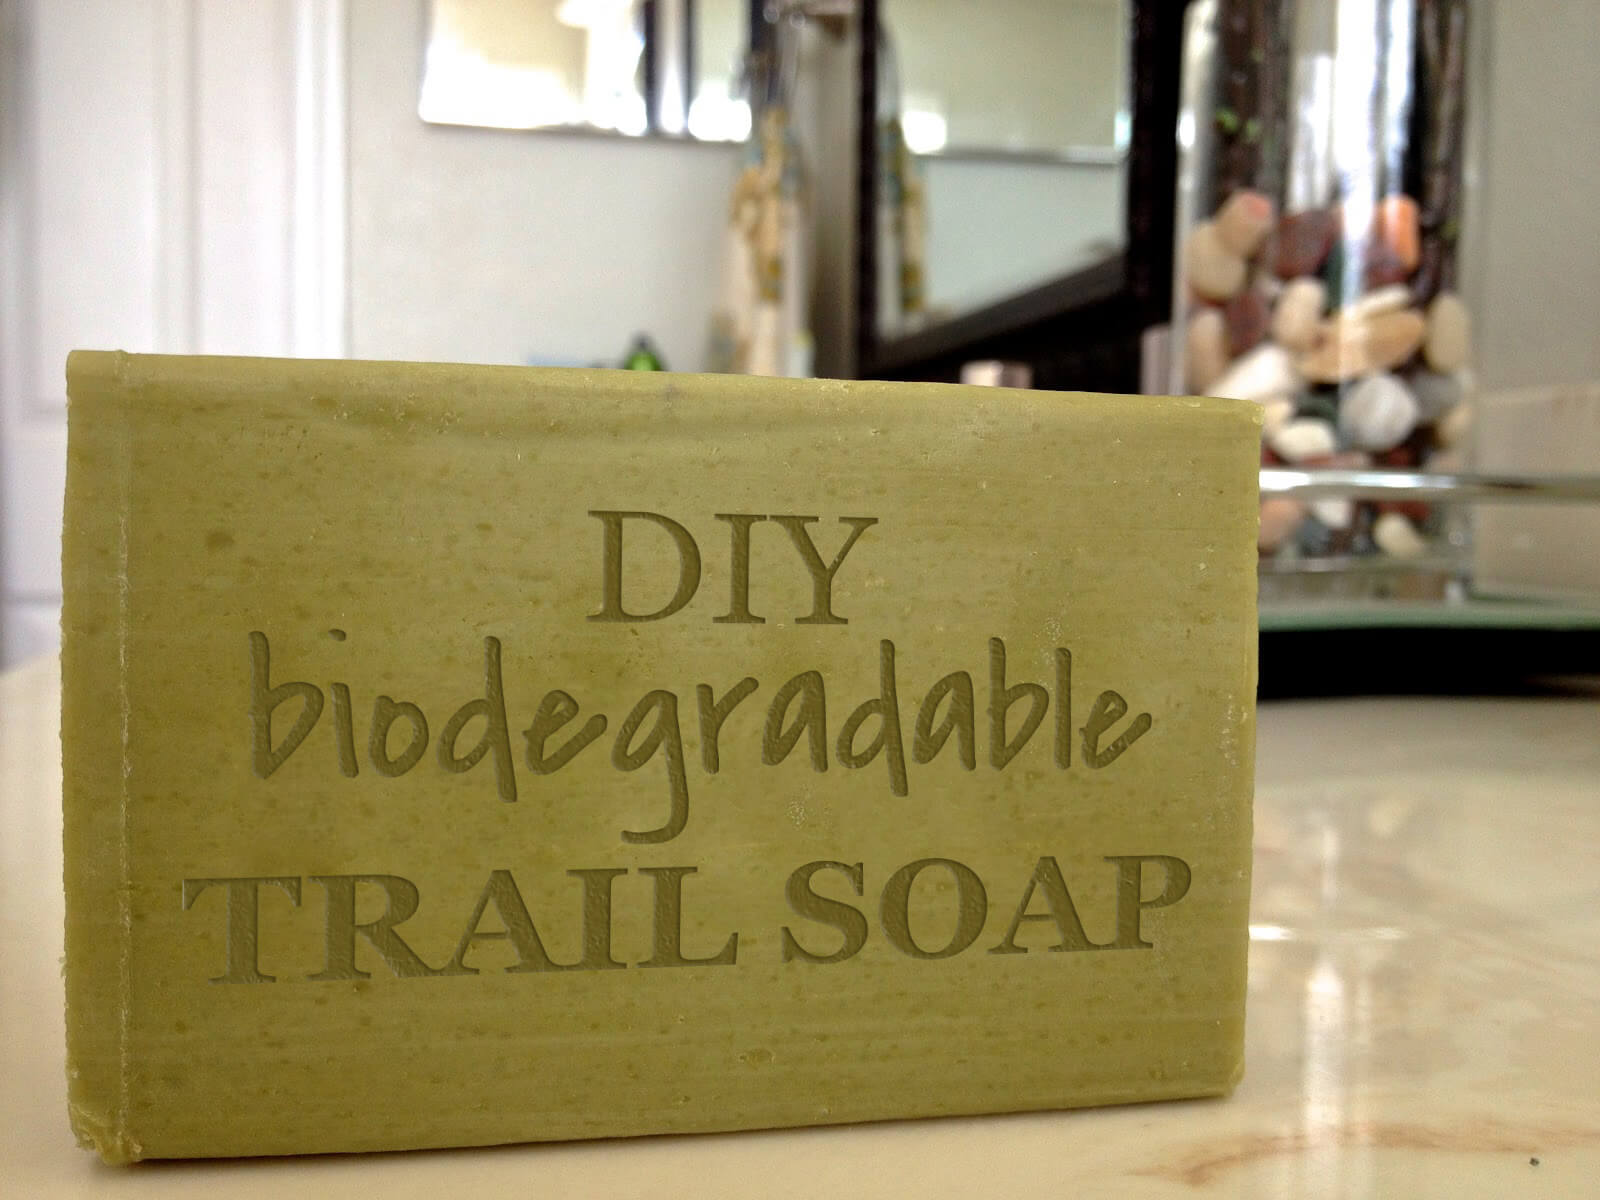 diy-biodegradable-soap